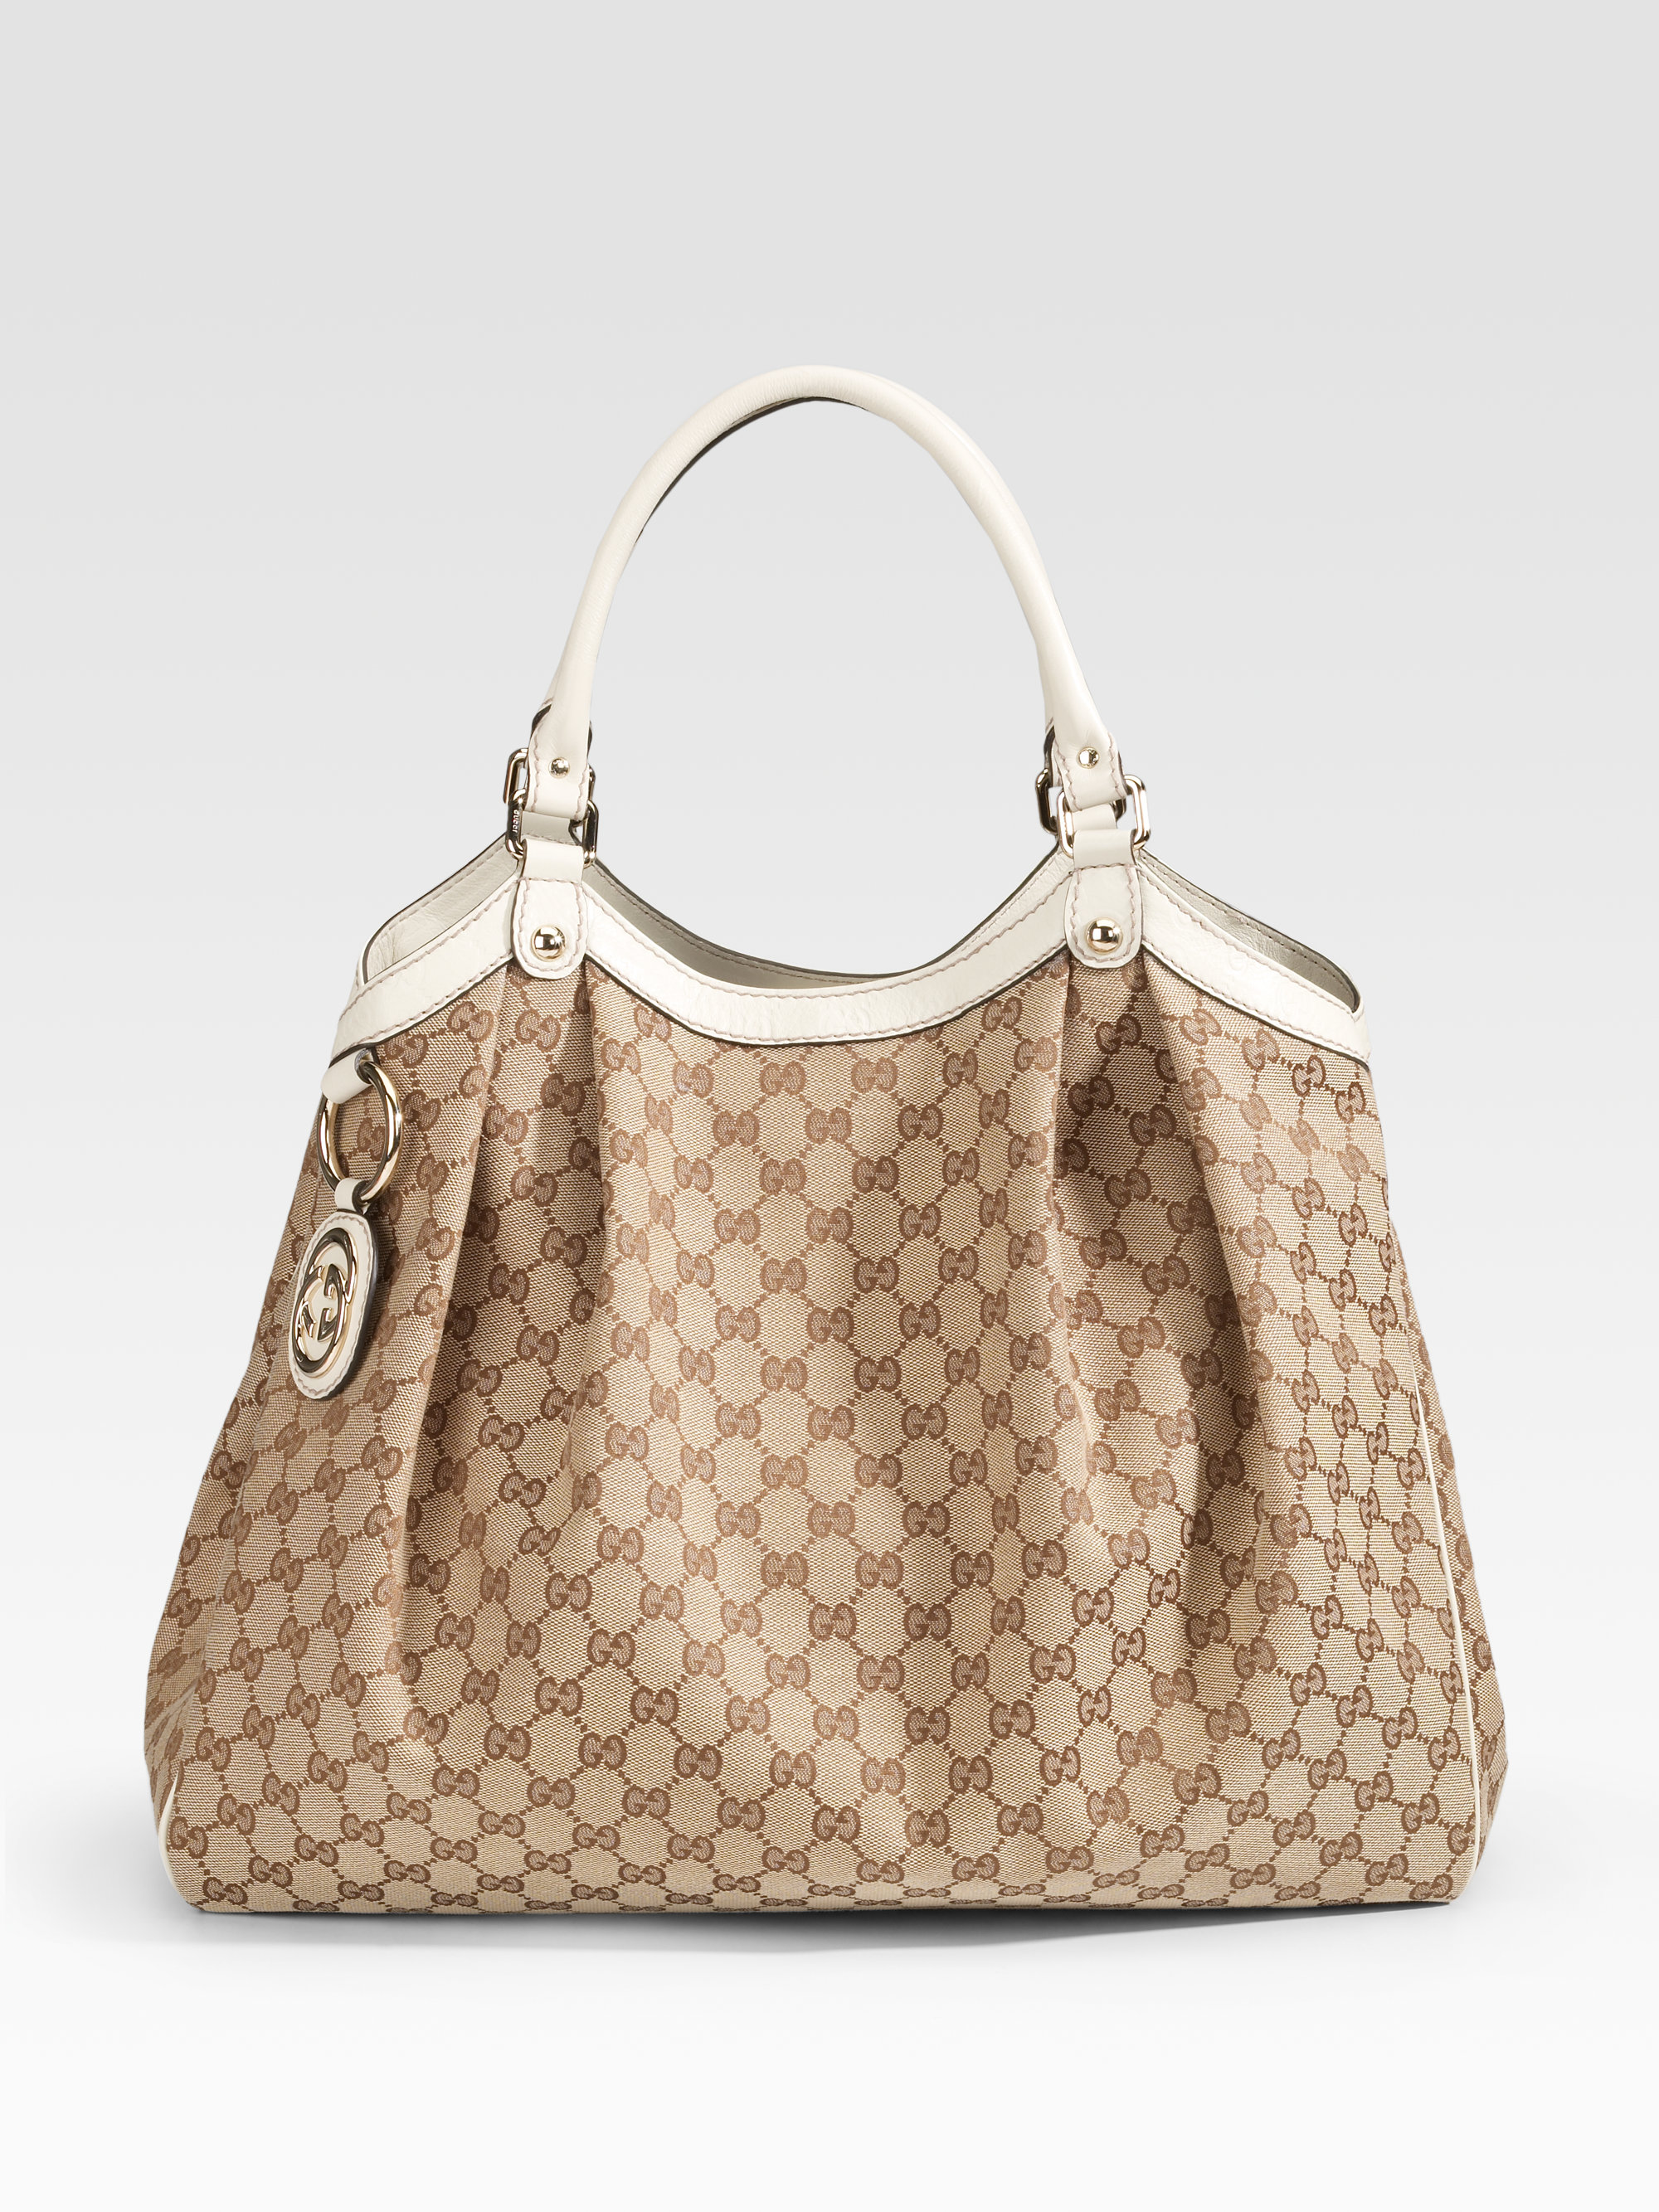 376e142a8cb Gucci Large Sukey Tote Handbag - Best Handbag In 2018